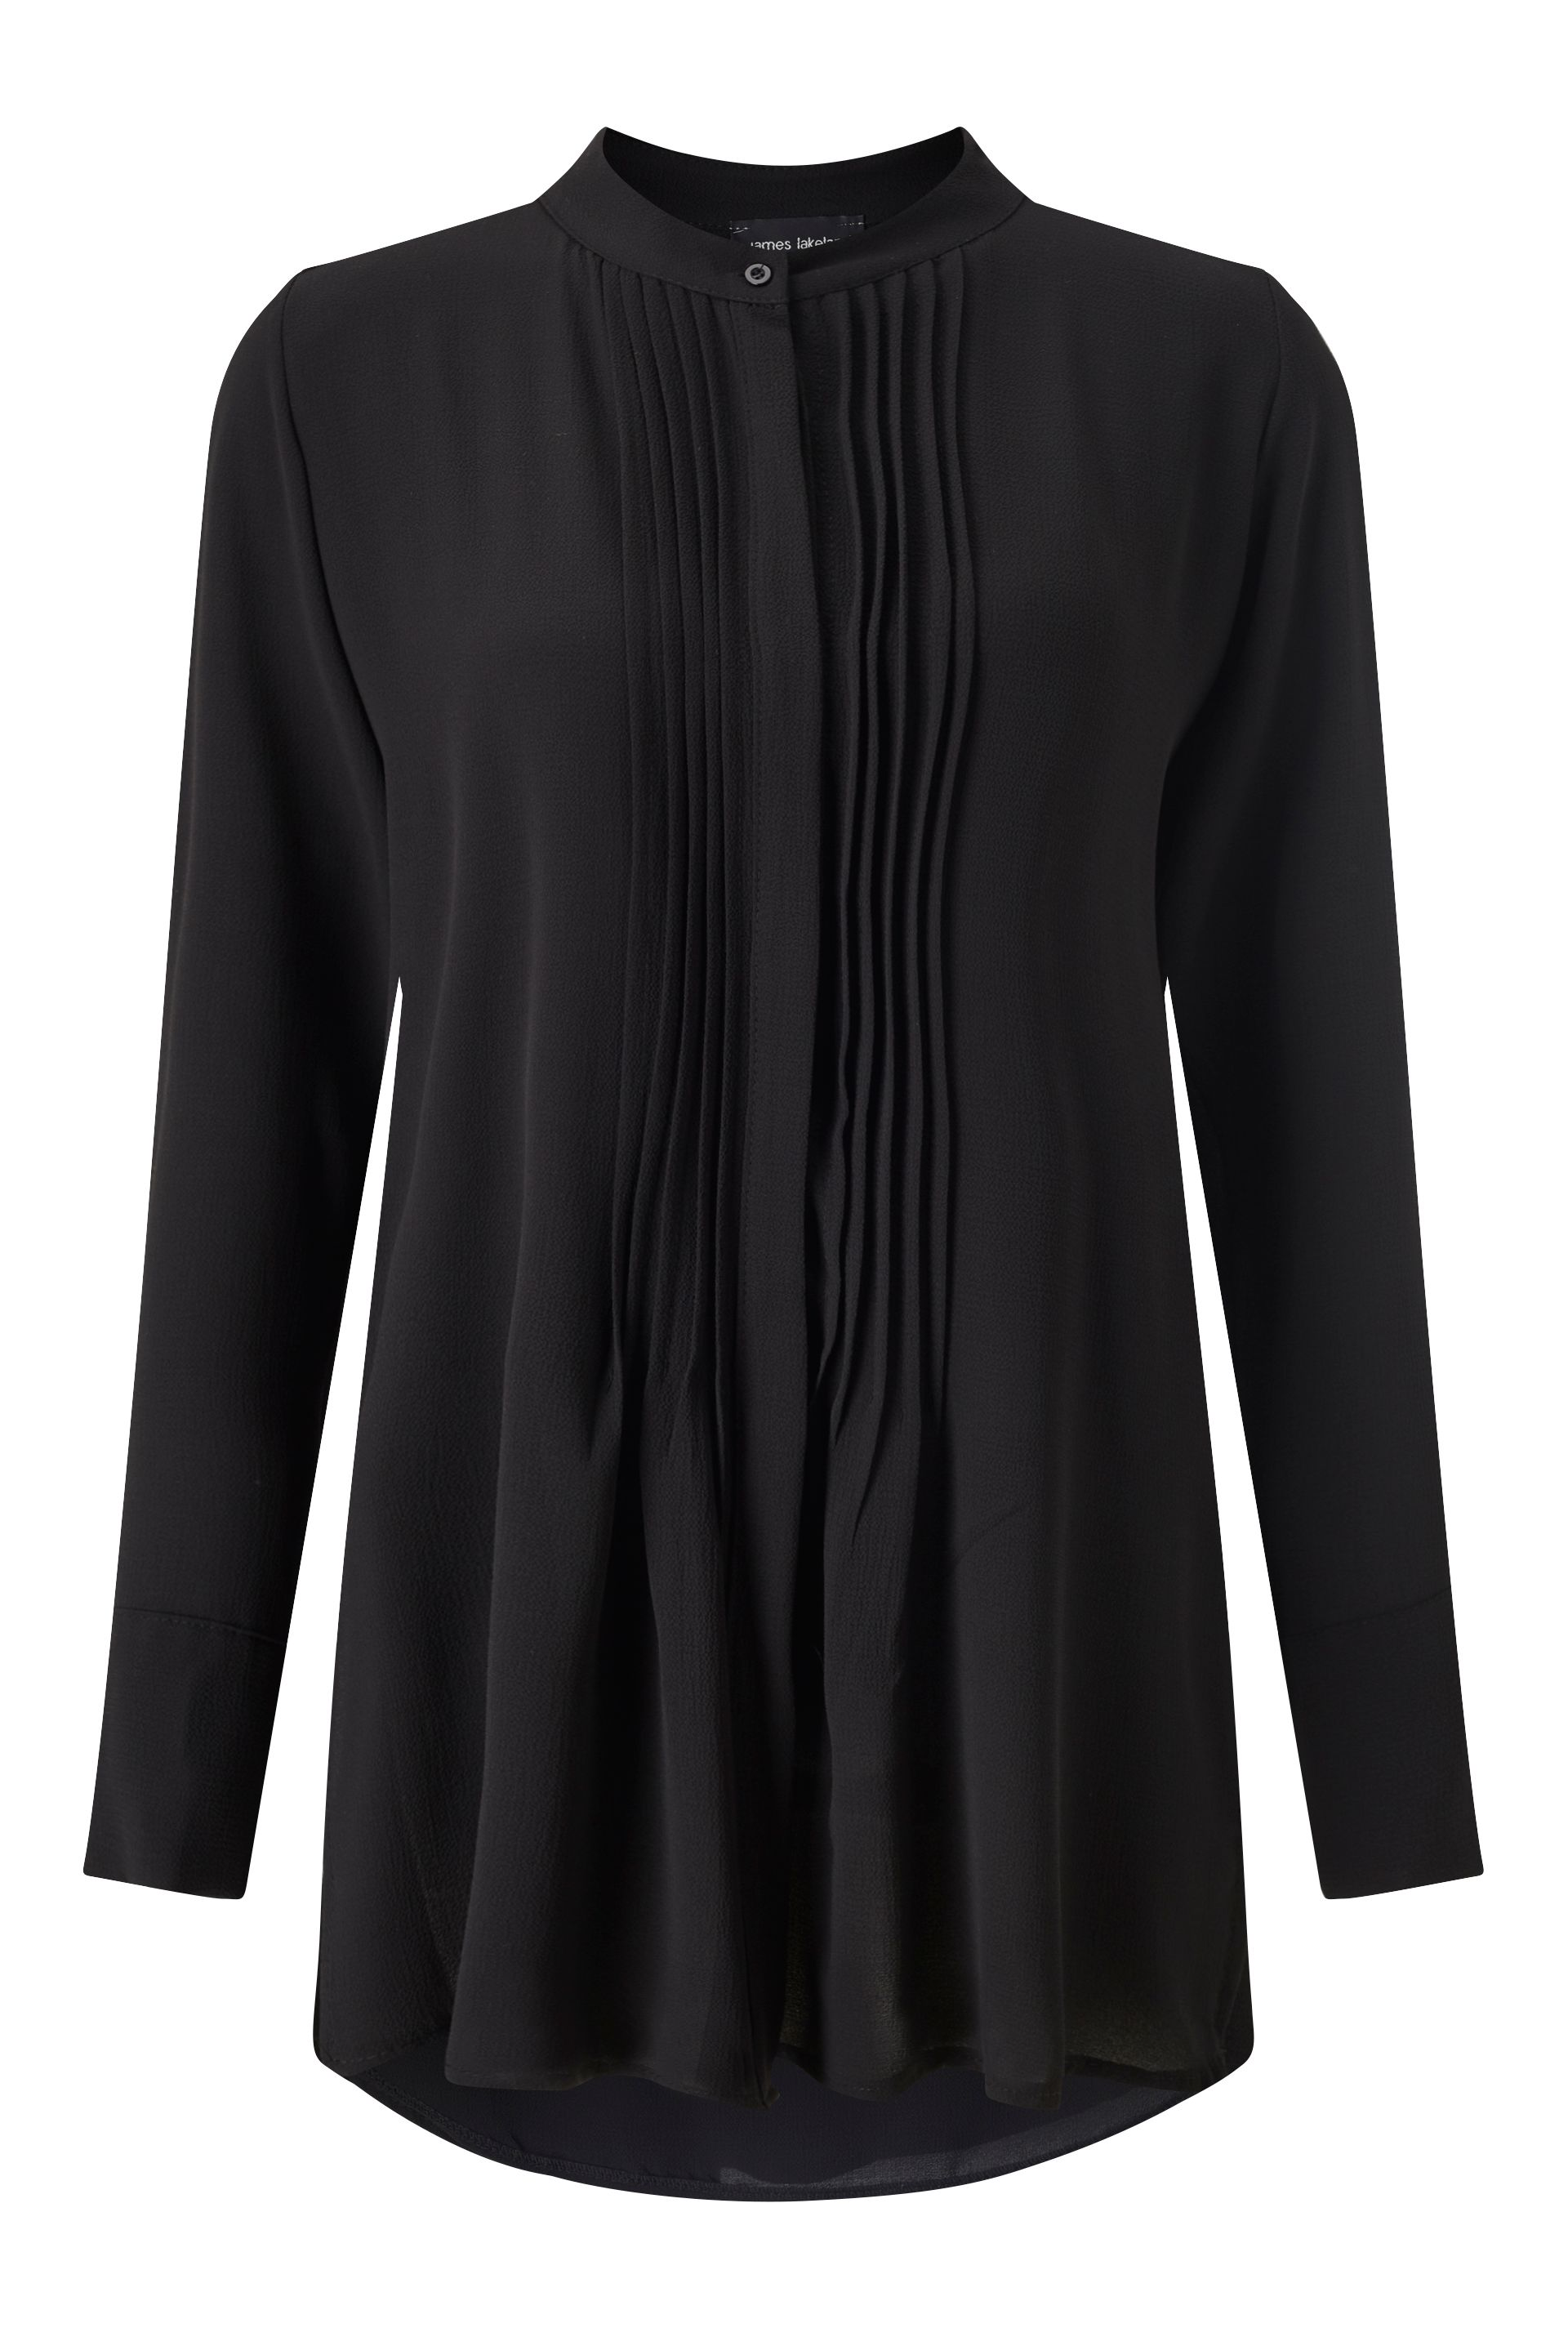 James Lakeland Pleat Front Blouse, Black